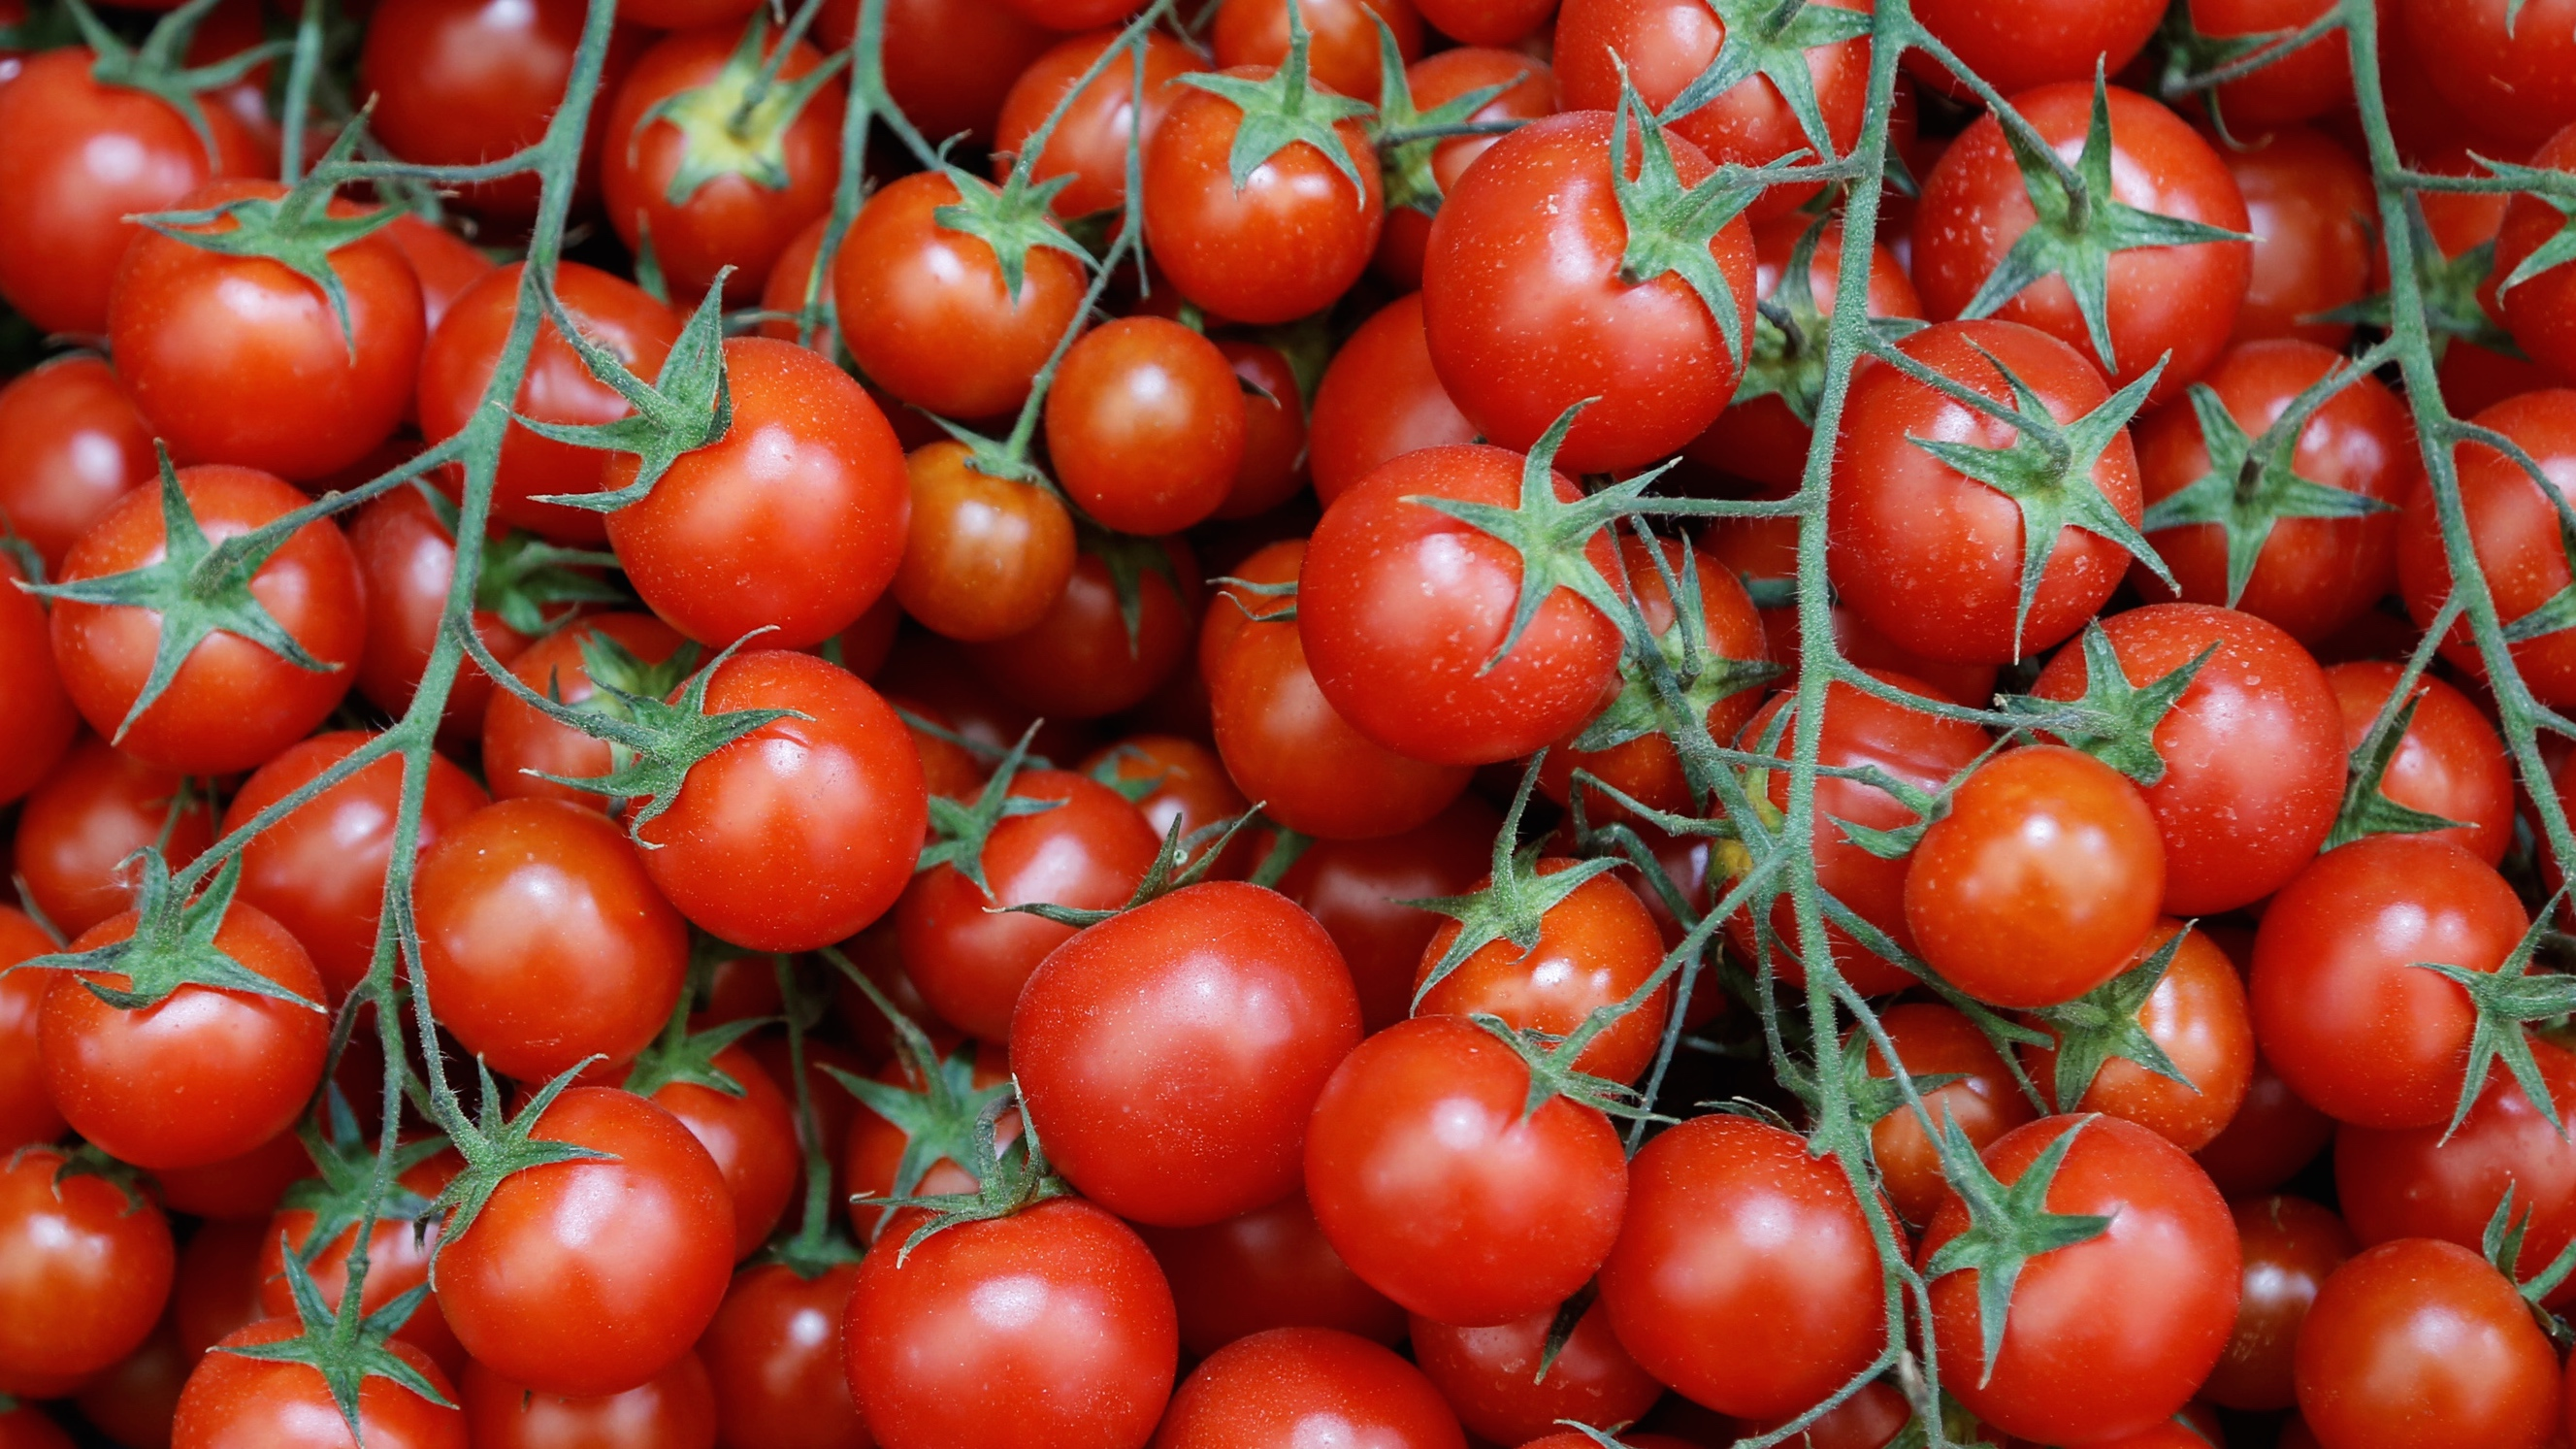 Classy A Desert Farm Is Growing Tomatoes On Seawater Solar Power Quartz Tomato Growers Supply Promo Code houzz-02 Tomato Growers Supply